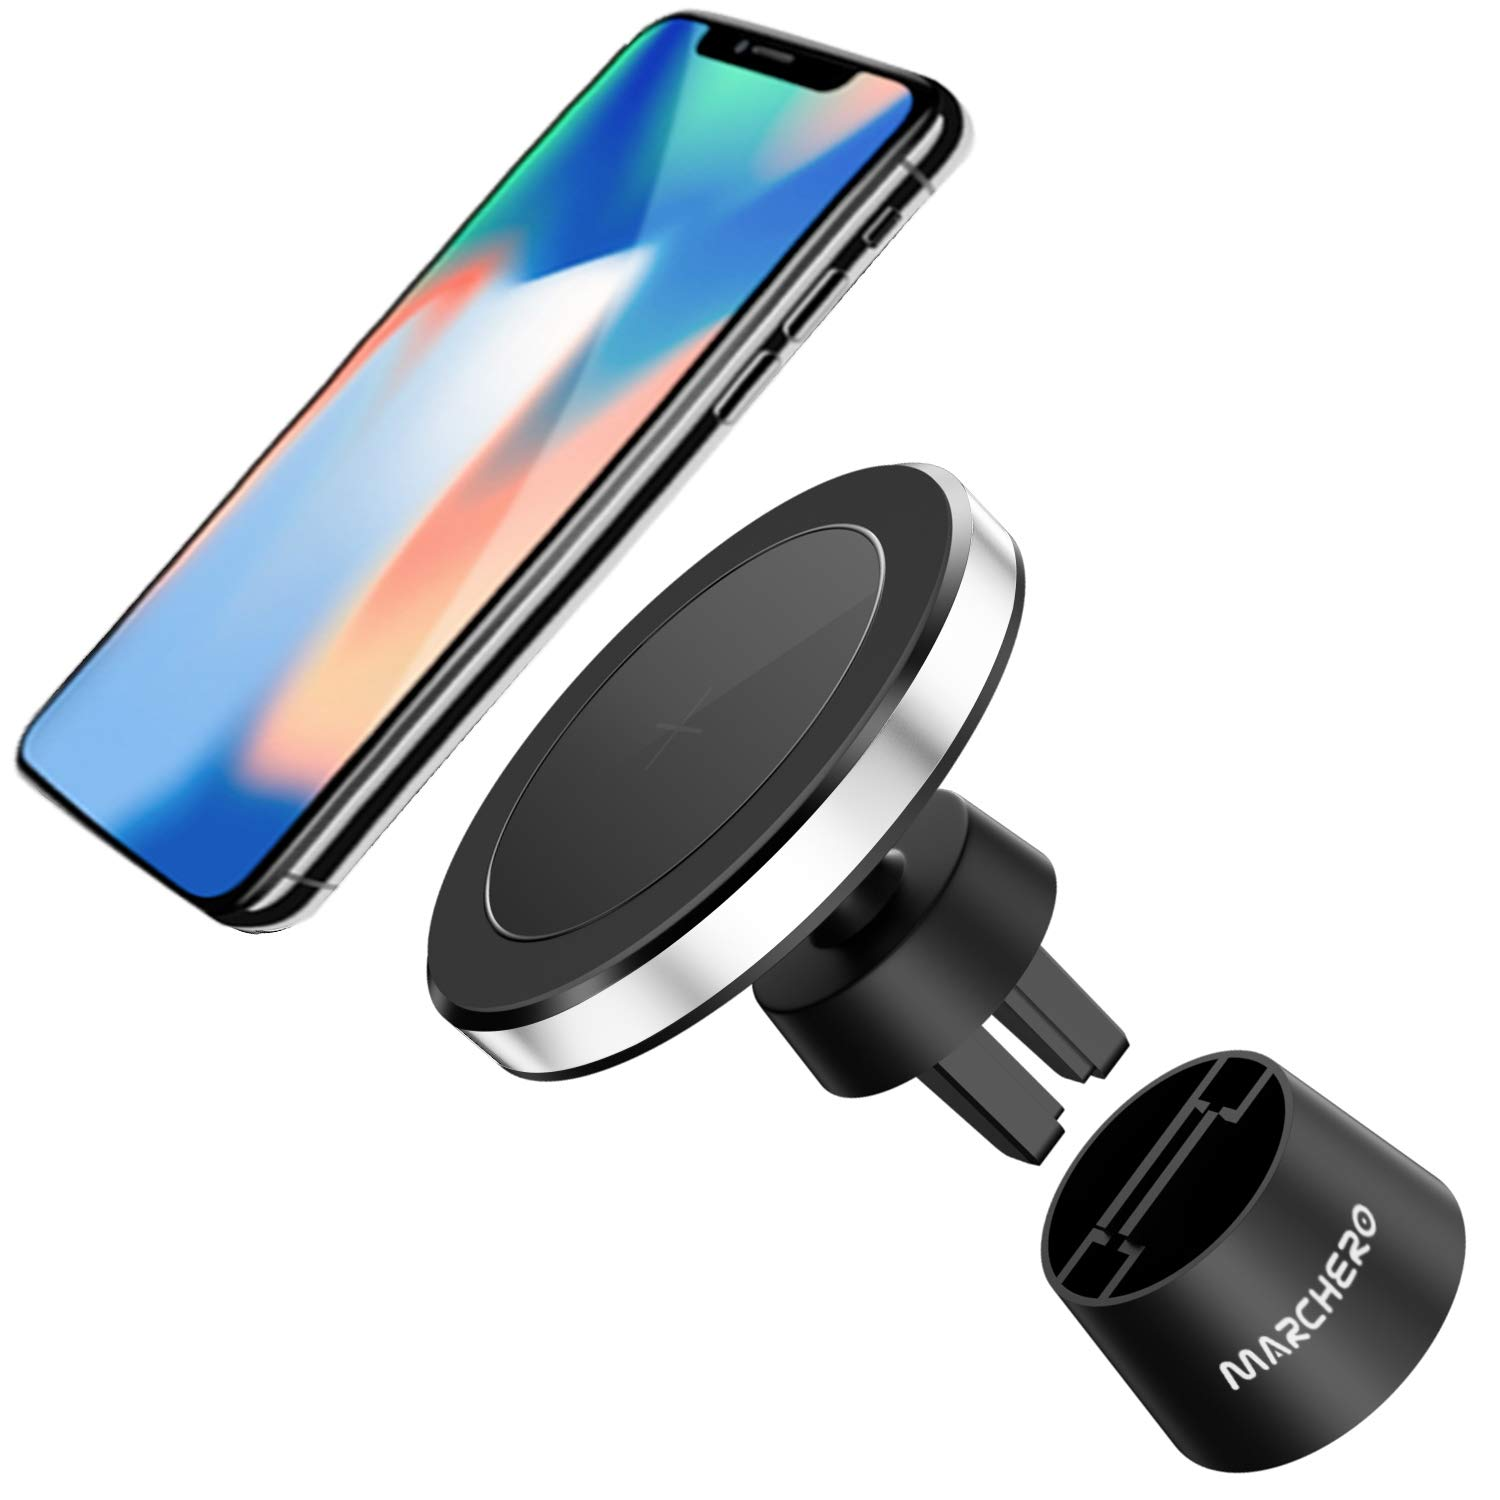 Magnetic Wireless Car Charger, MARCHERO 10W Charging Car Mount Air Vent or Stand 7.5W Compatible iPhone Xs/XR/X/8,10W Compatible Samsung Galaxy Note10/S10/S9/S8/S7/S6 Edge(Update) by MARCHERO